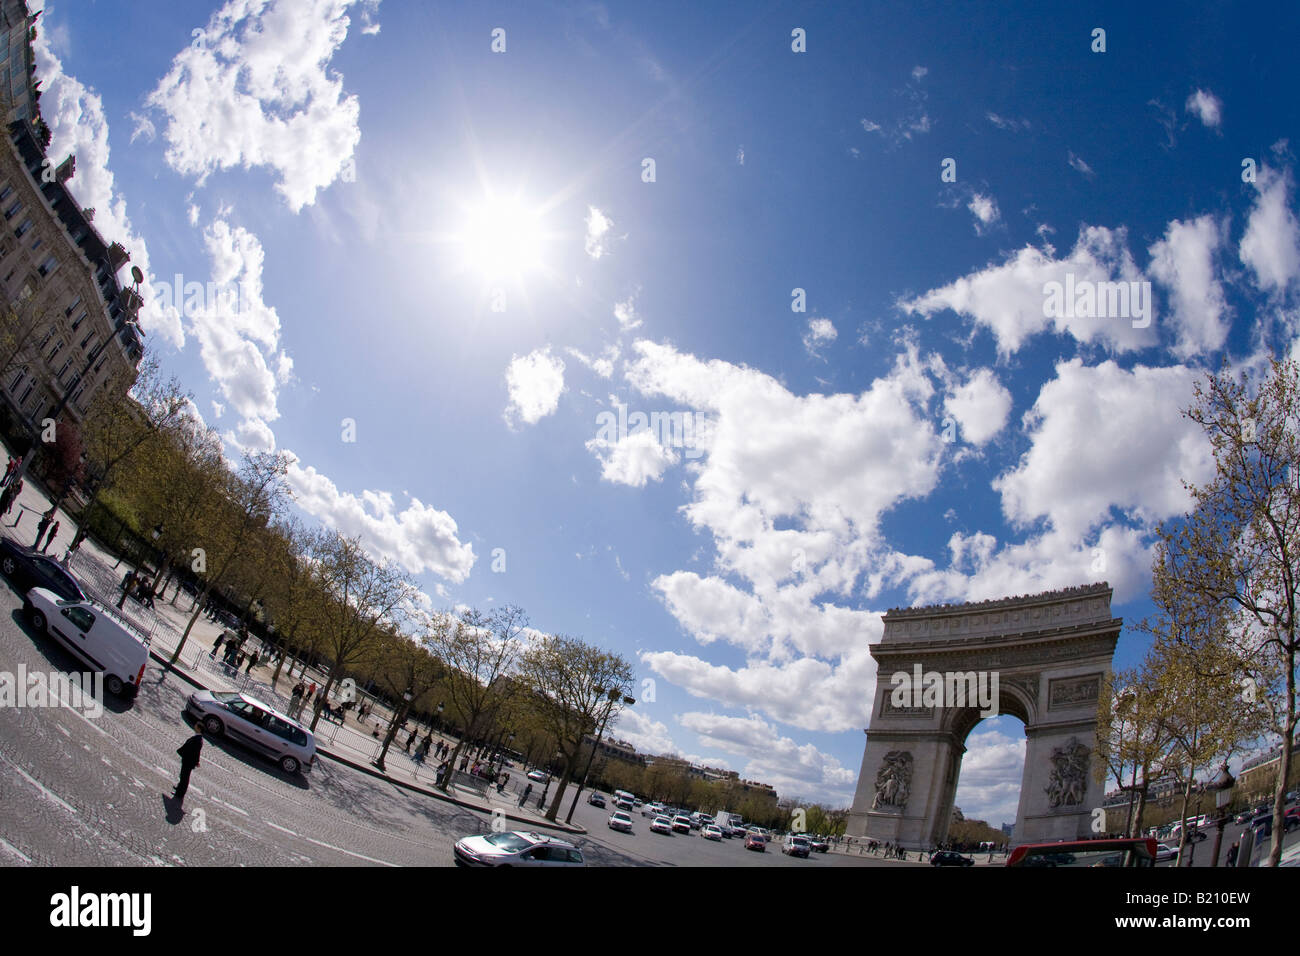 Arc de Triomphe on a sunny spring day Place Charles de Gaulle Champs Elysee Etoile Paris France Europe EU - Stock Image